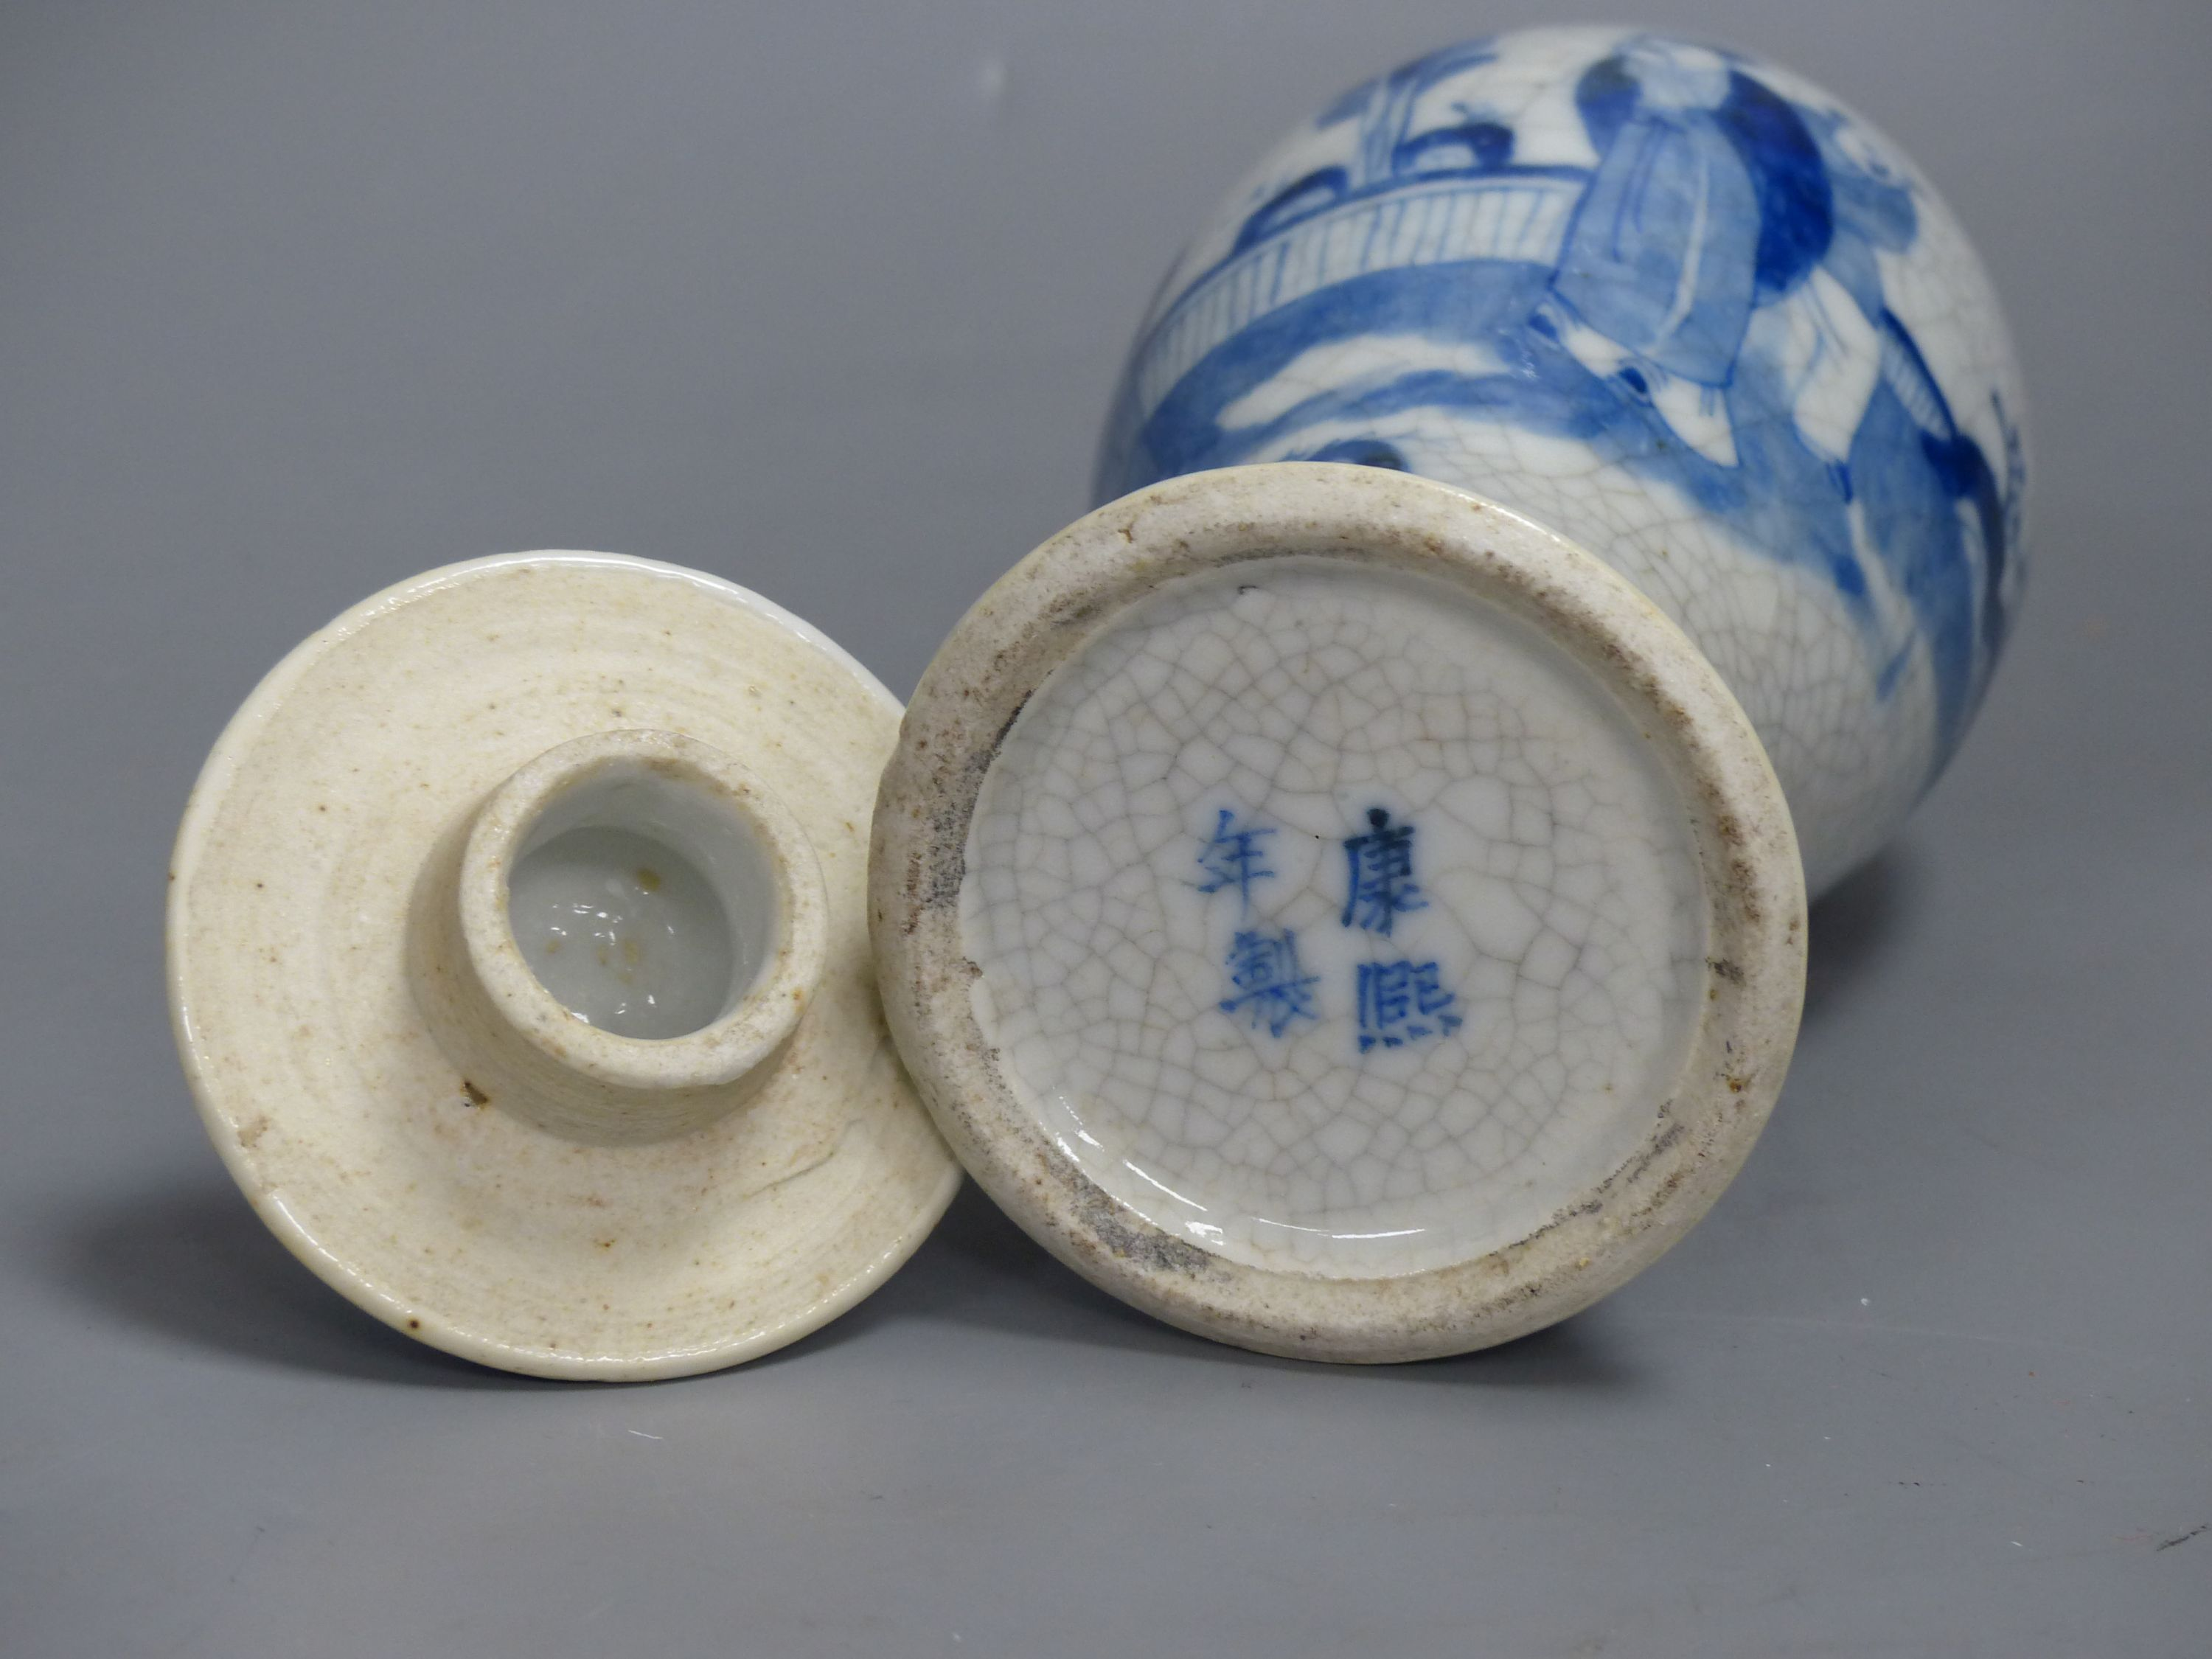 A late 19th century Chinese blue and white crackle glaze vase and cover, height 27cm - Image 5 of 5